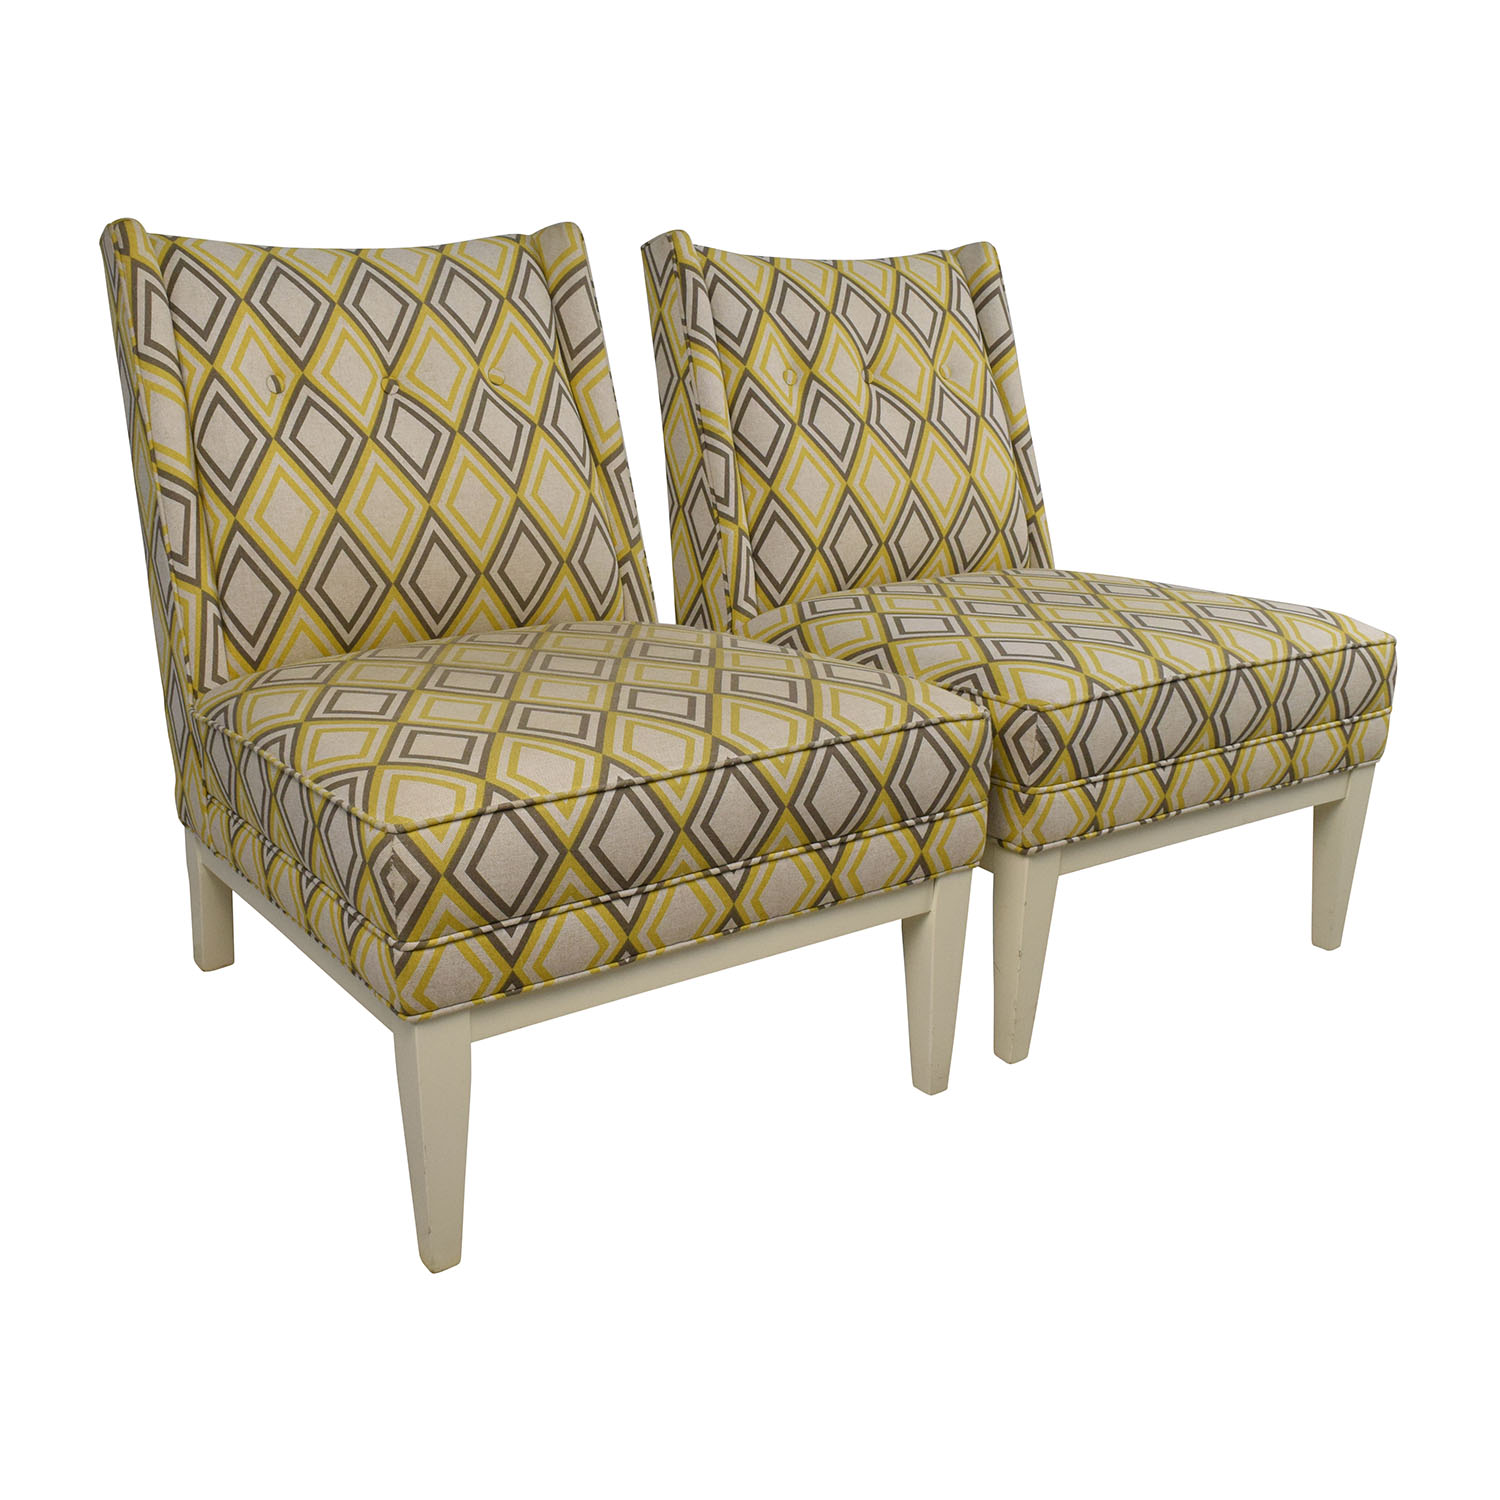 Admirable 84 Off Jonathan Adler Jonathan Adler Morrow Yellow And Gray Chair Pair Chairs Machost Co Dining Chair Design Ideas Machostcouk